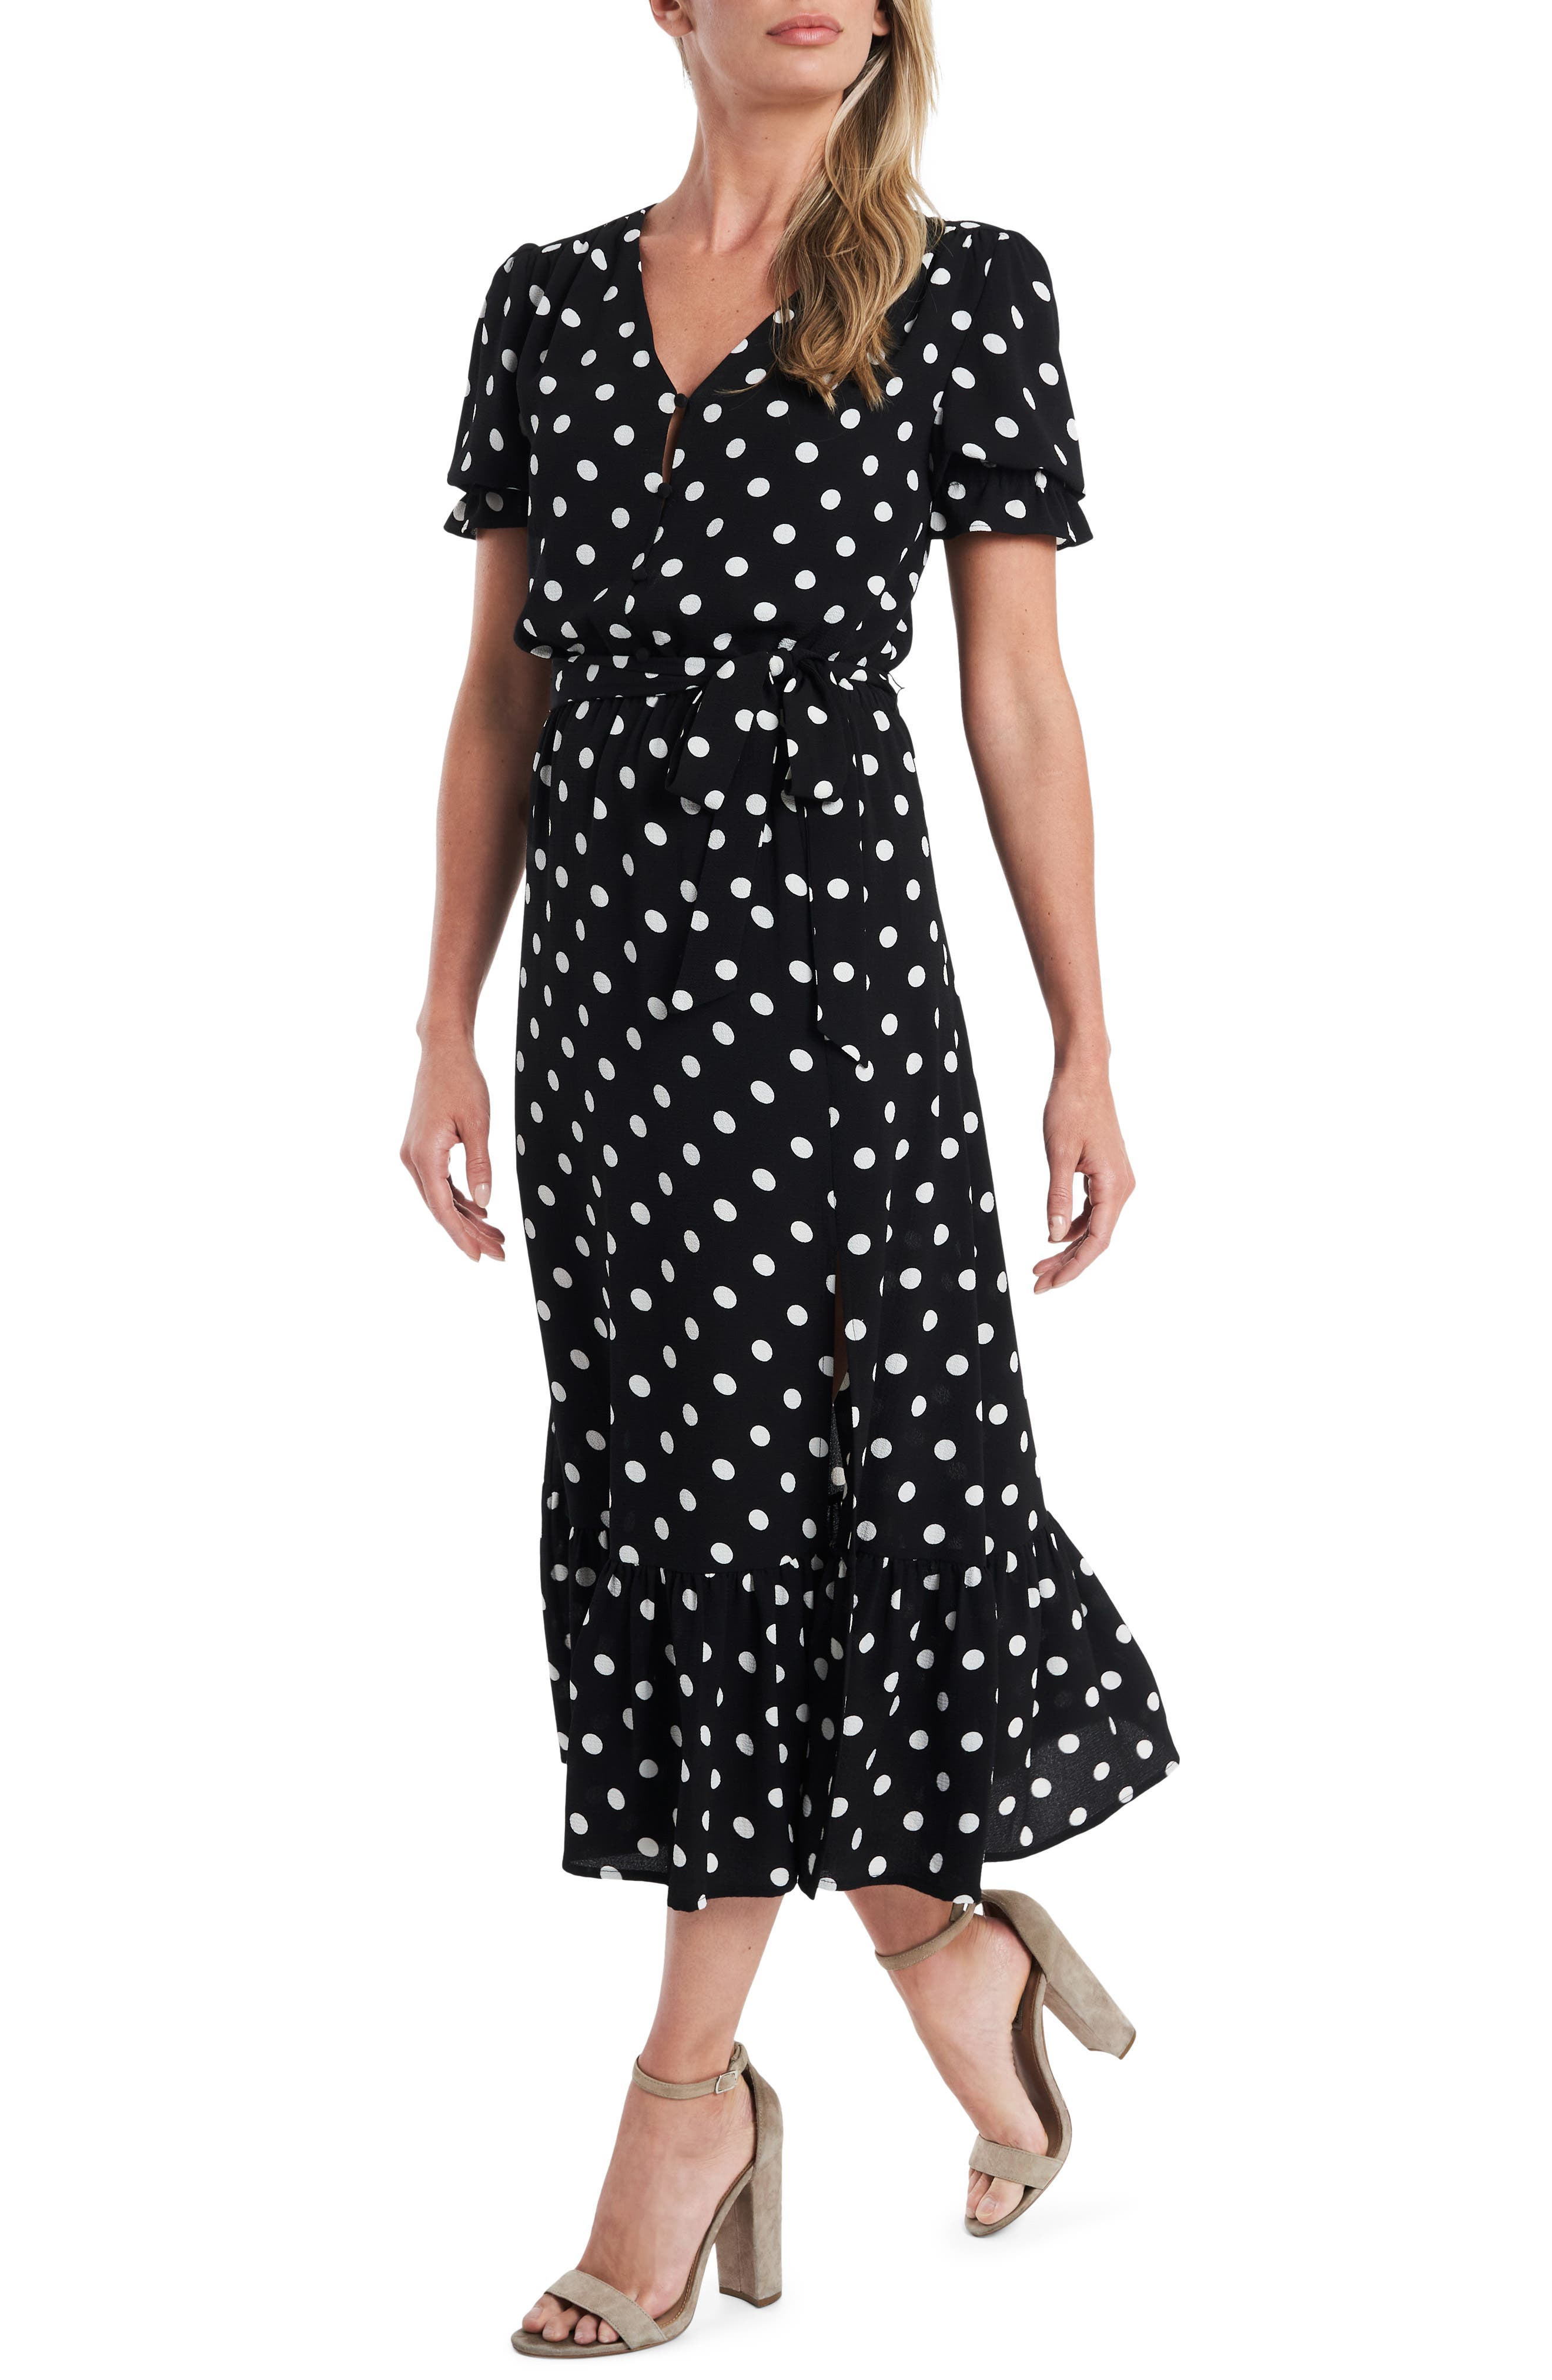 Vintage Polka Dot Dresses – 50s Spotty and Ditsy Prints Womens Cece Disco Dot Puff Sleeve Midi Dress Size 12 - Black $69.50 AT vintagedancer.com